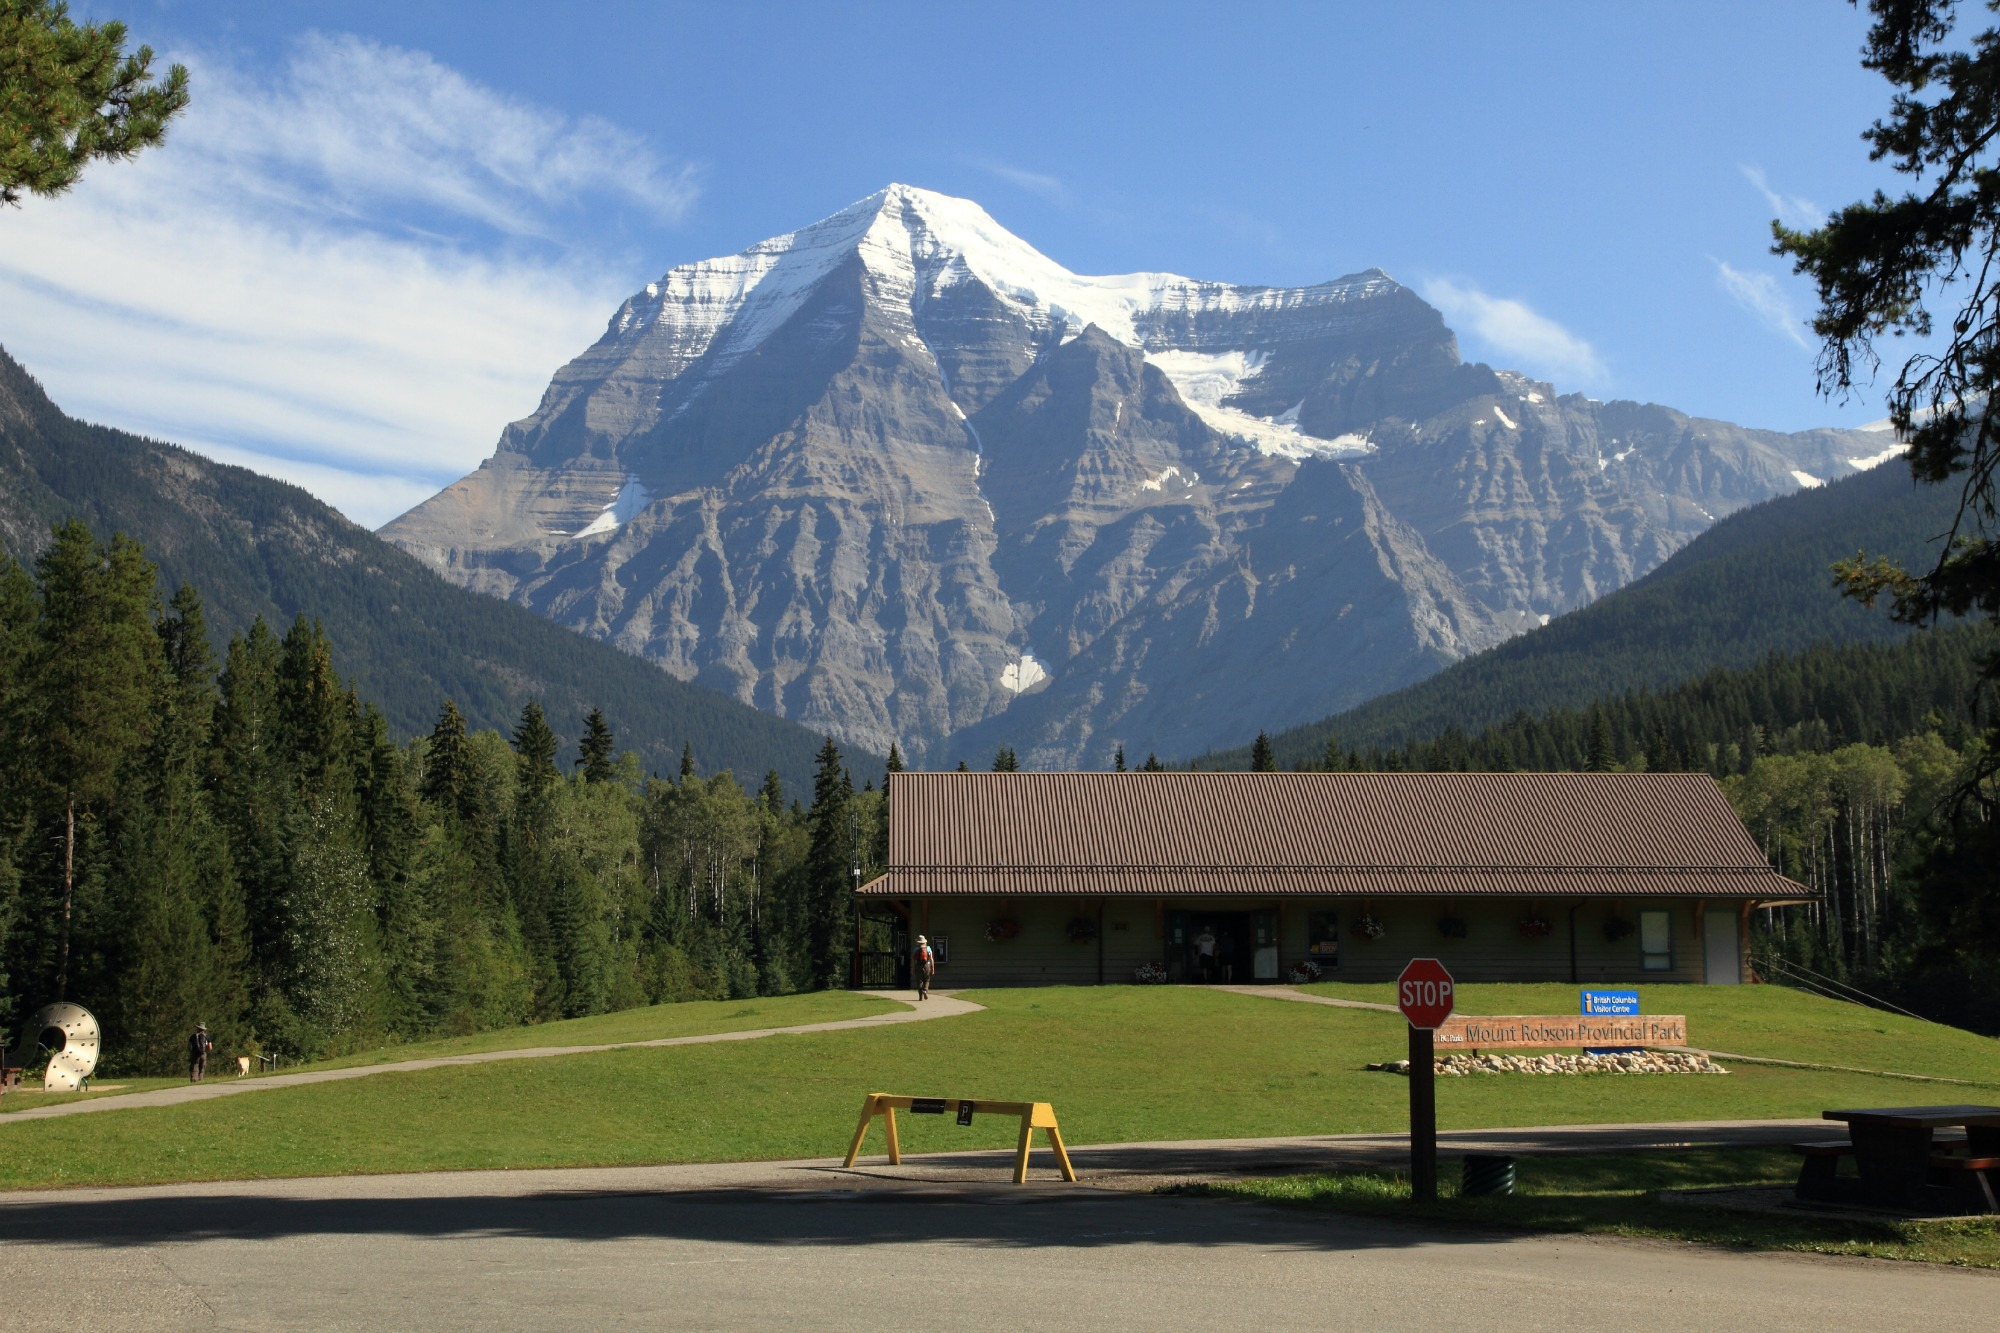 Mt Robson Visitor Center provides gorgeous view of Mt Robson